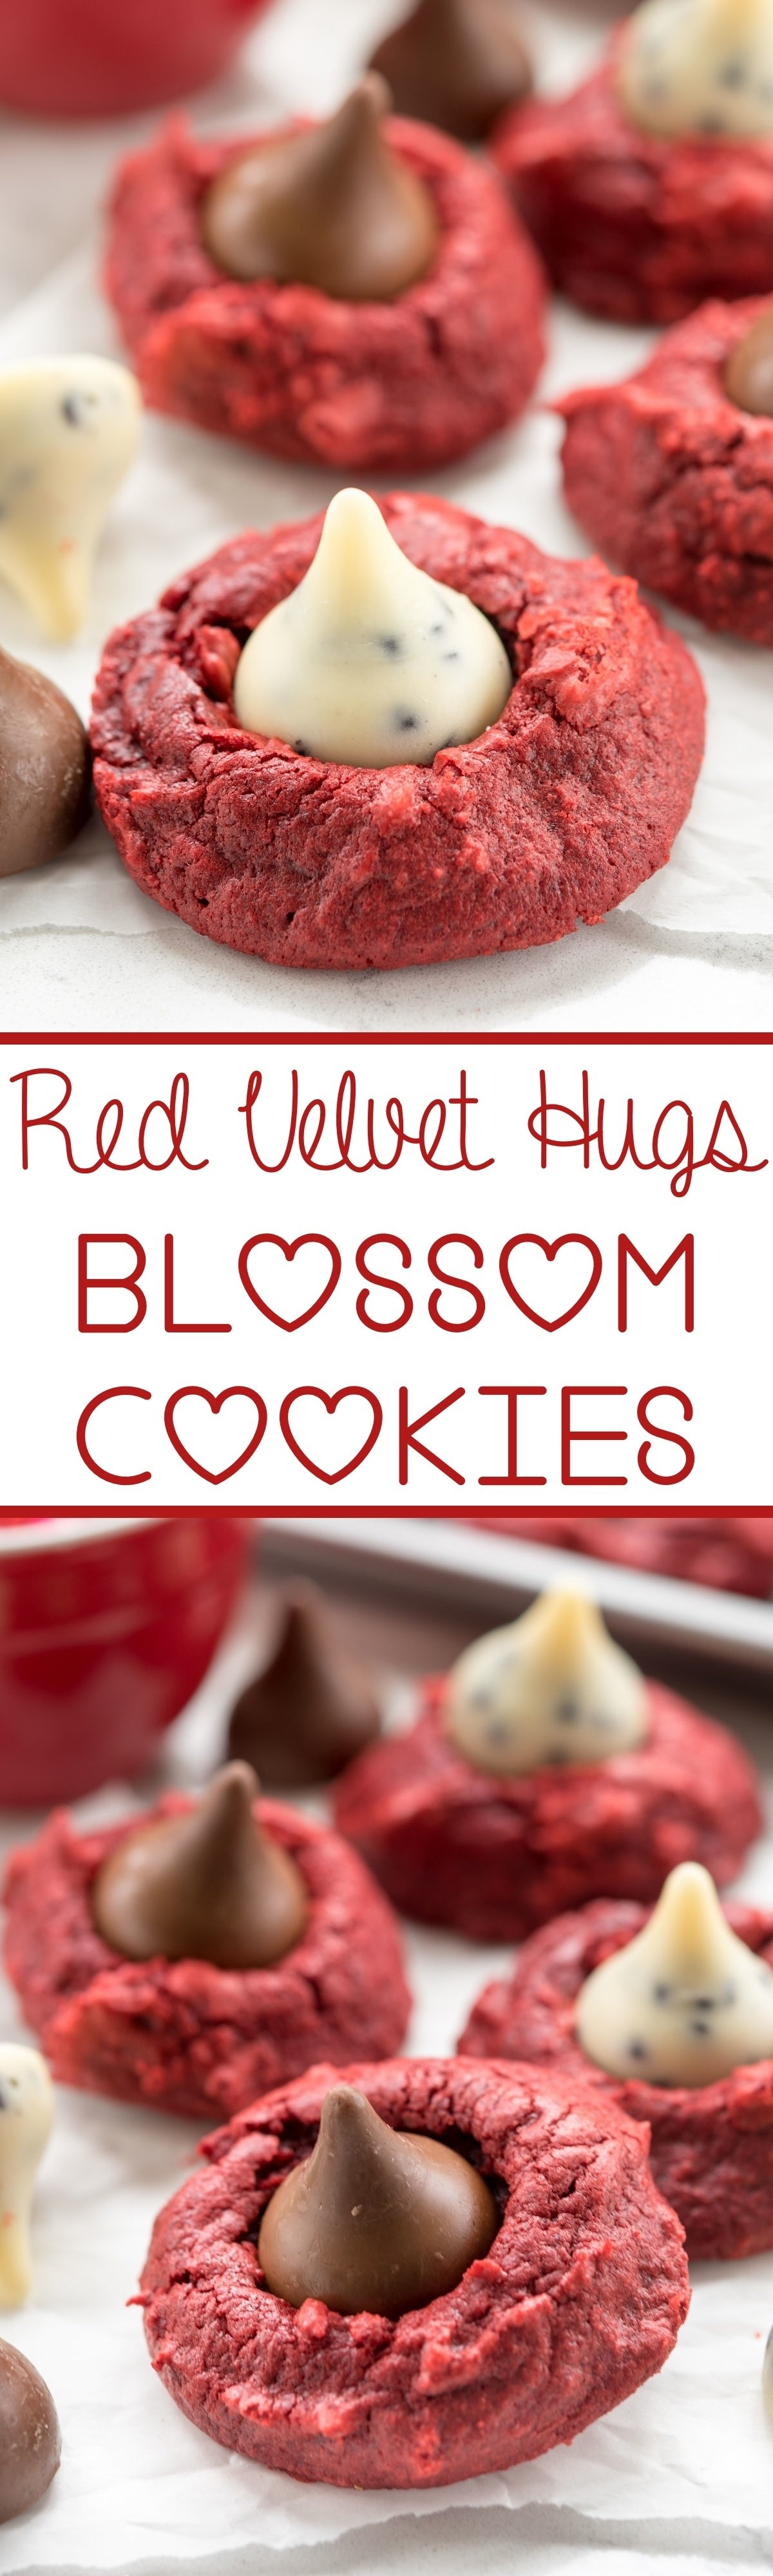 10 Pretty Red Velvet Cake Mix Recipe Ideas red velvet hugs blossom cookies this easy cookie recipe starts 2020